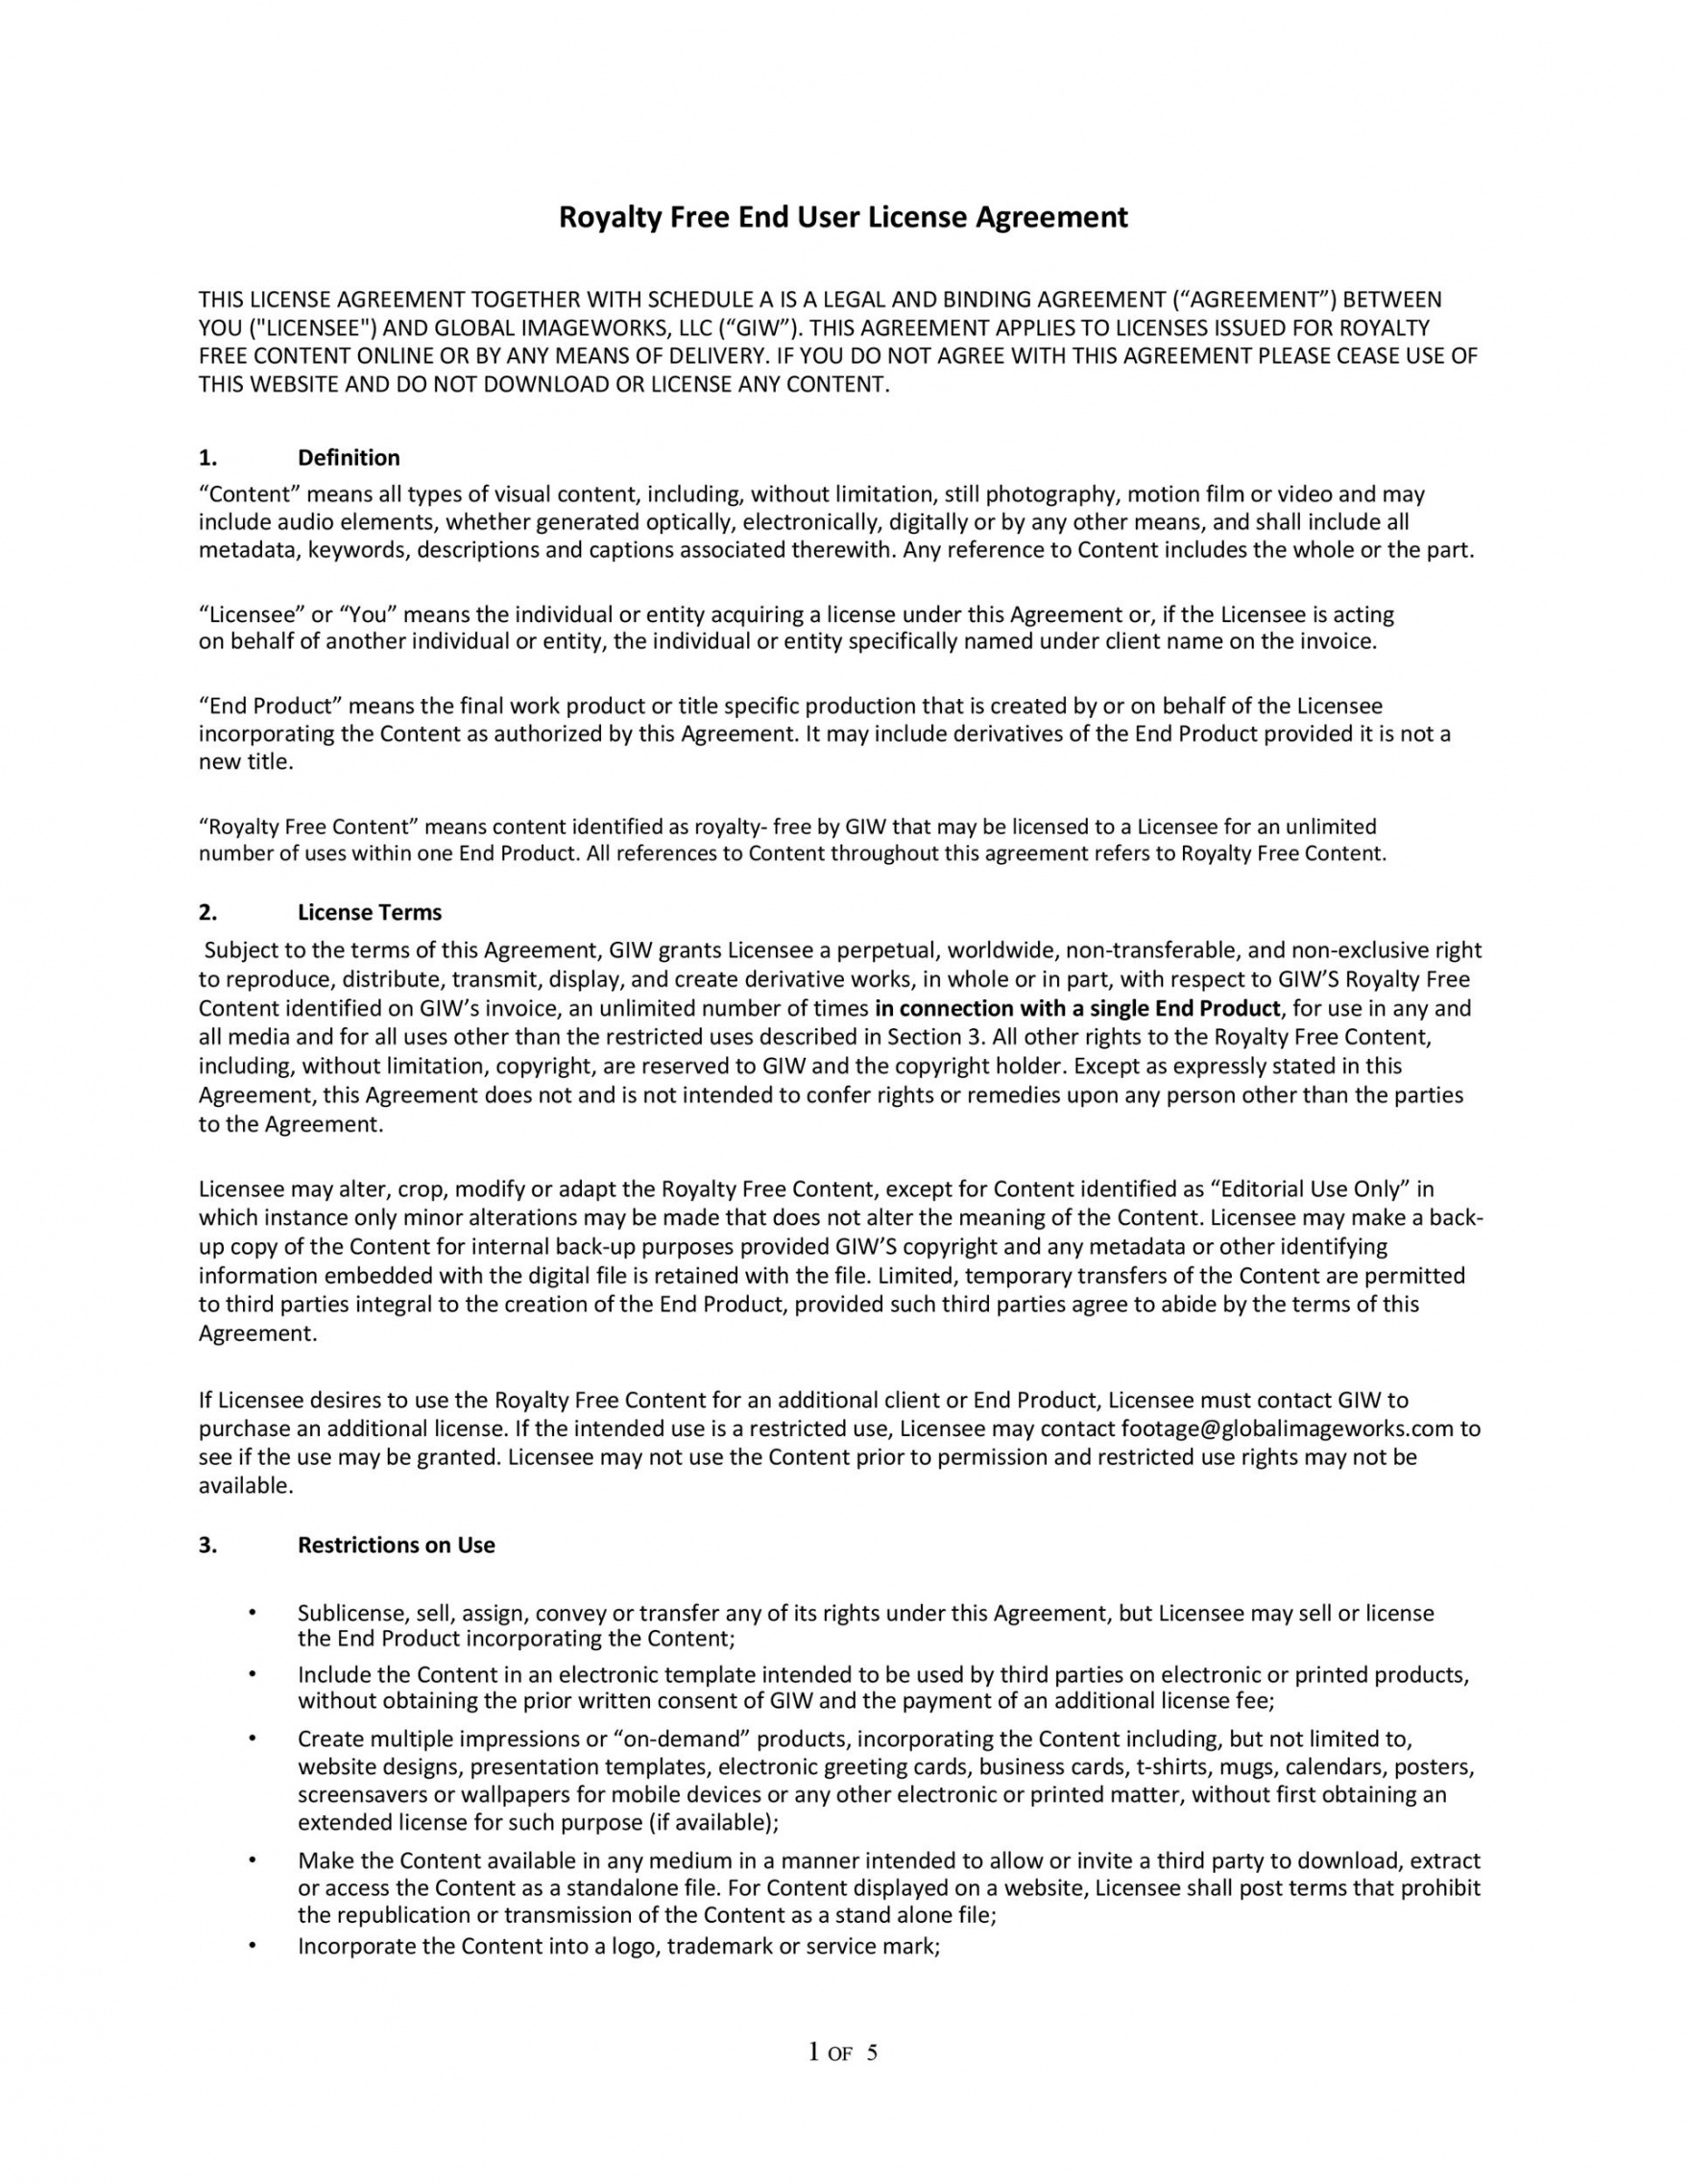 free 50 professional license agreement templates ᐅ templatelab royalty free license agreement template